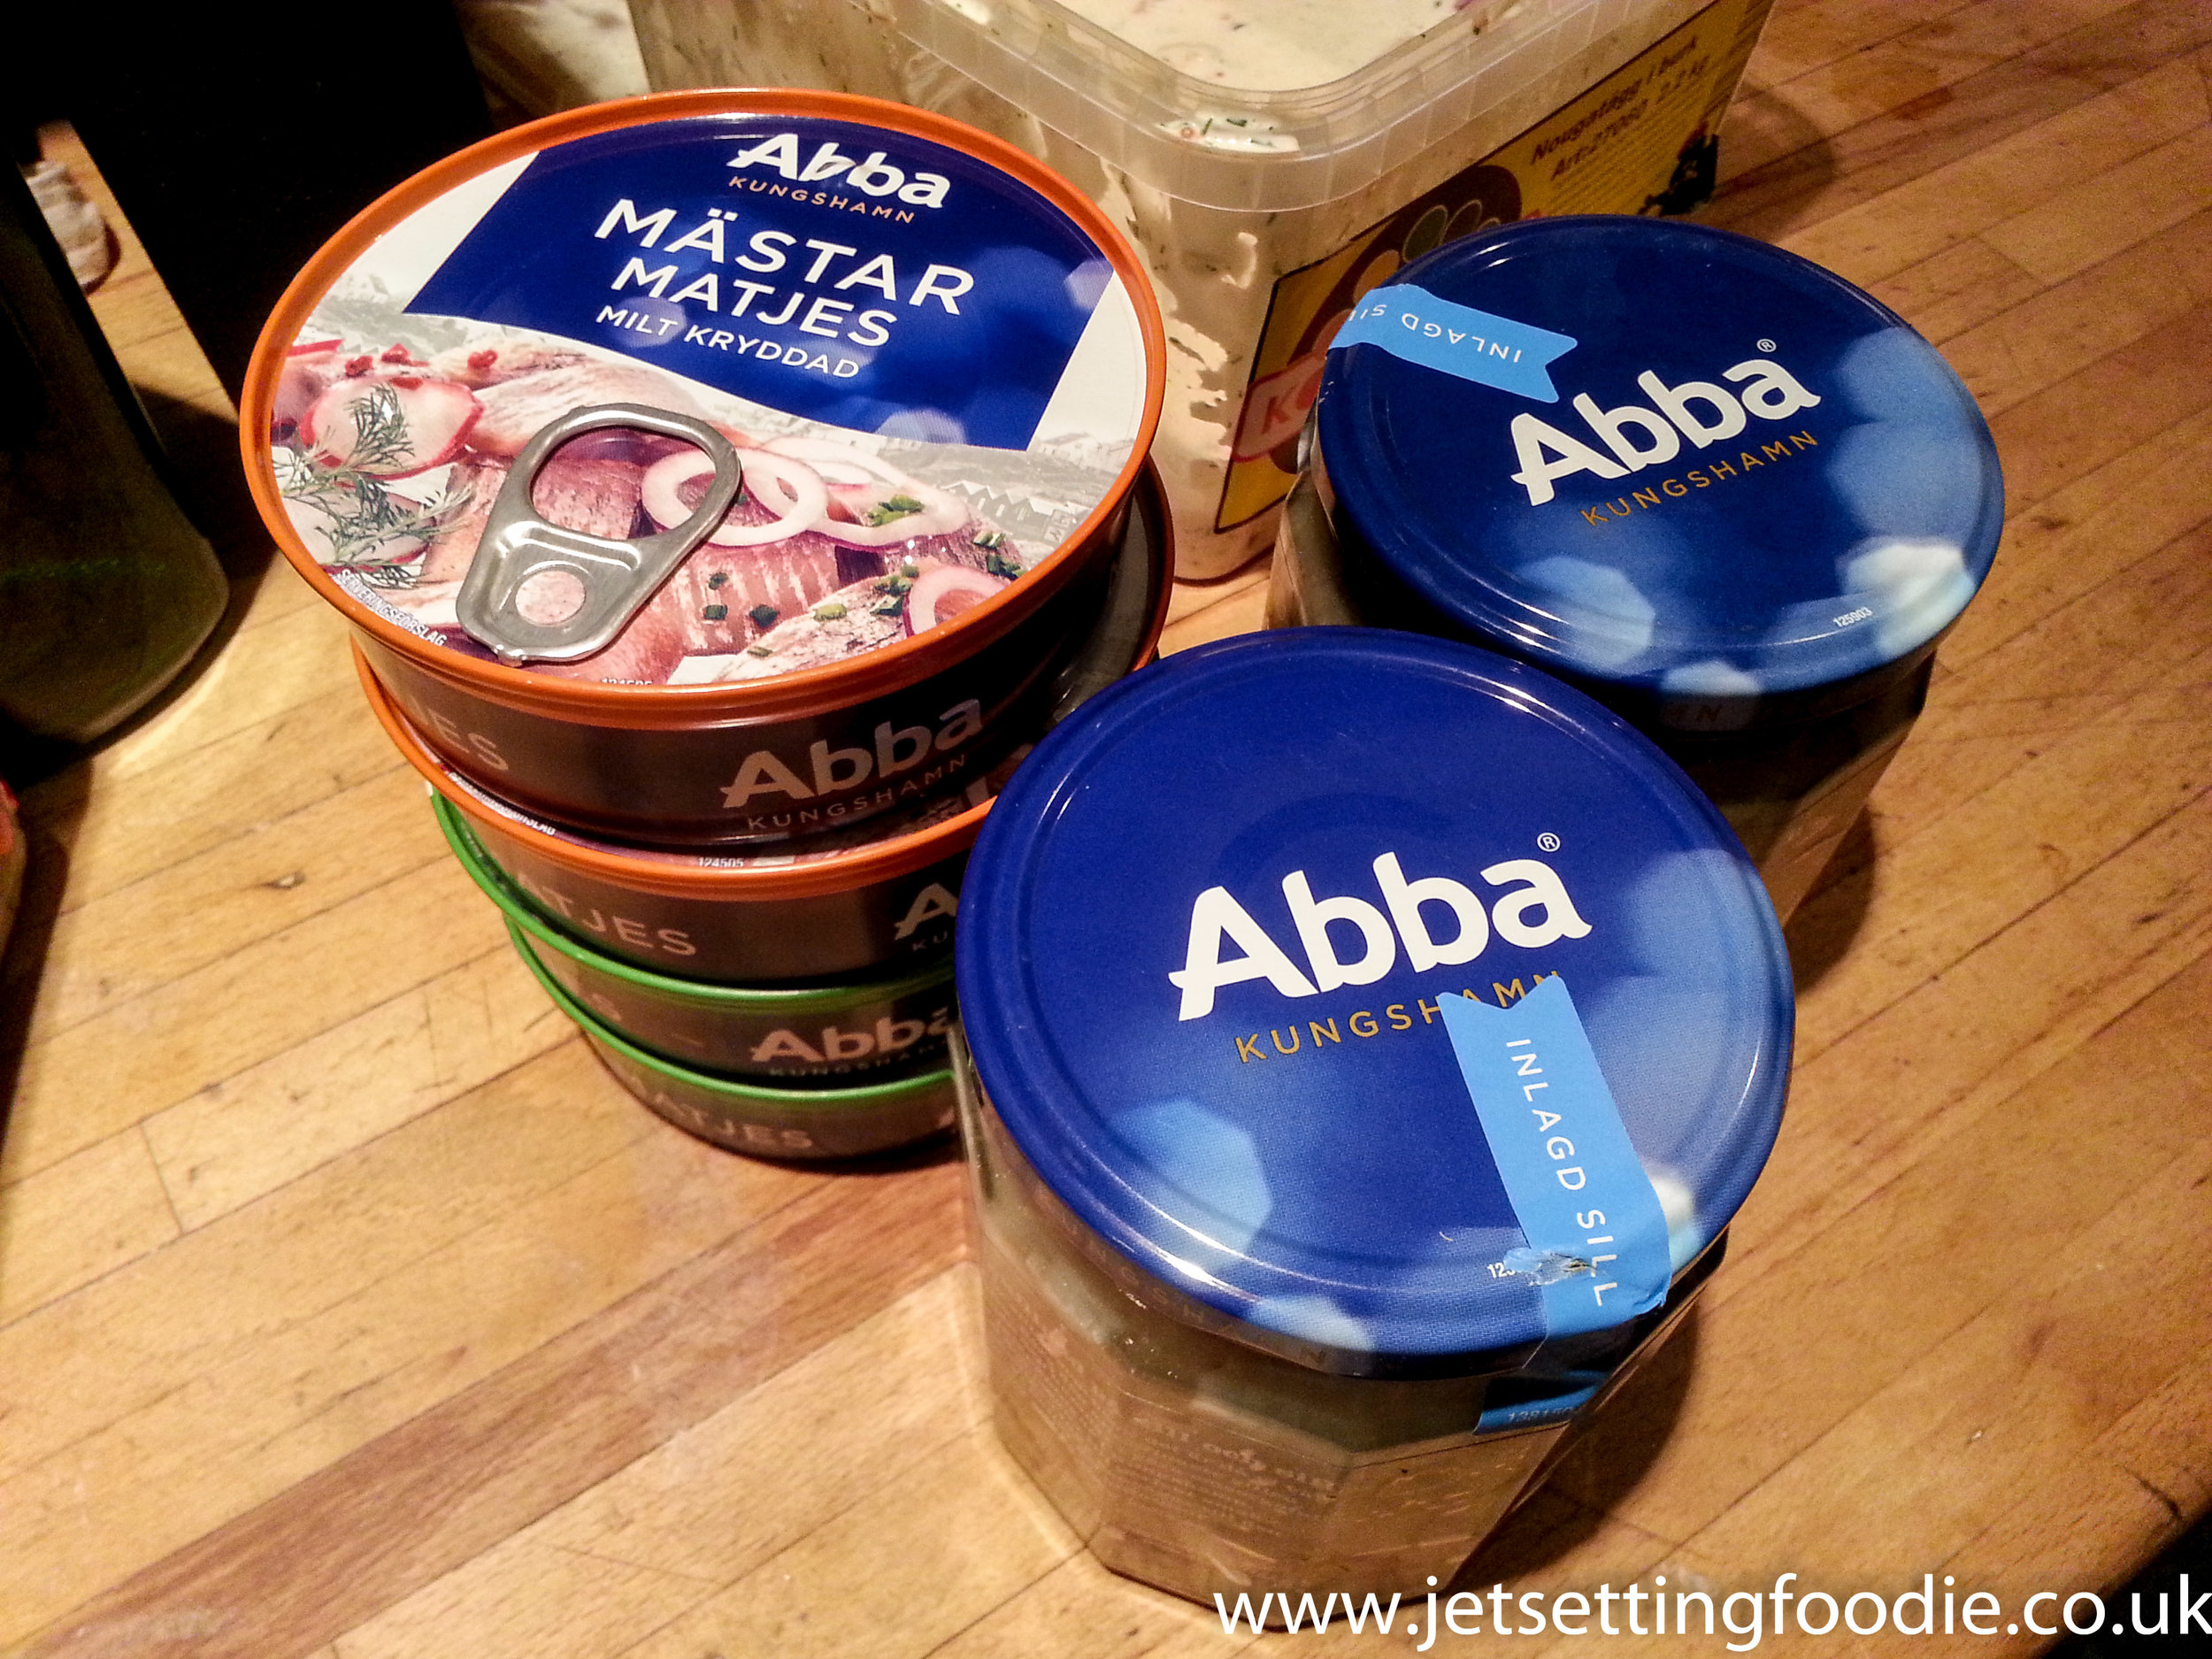 Abba gave up their music career to produce herring.